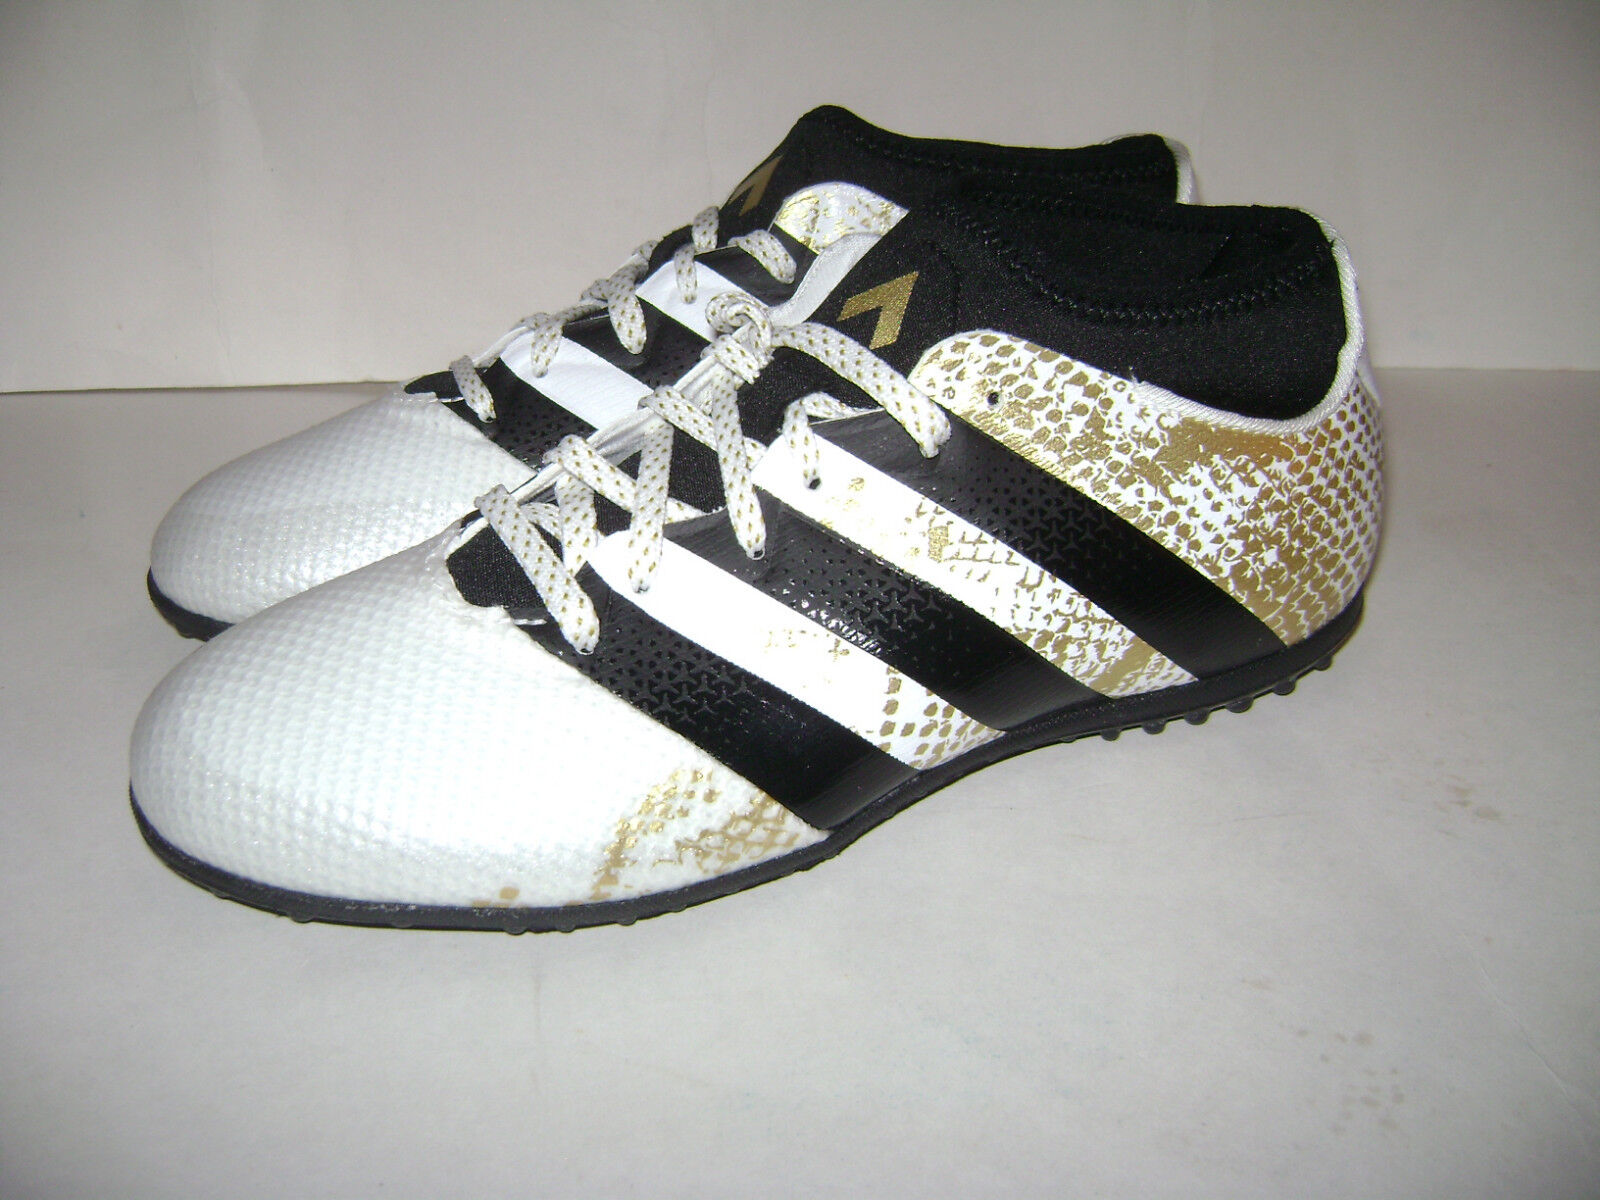 c9ebc317a15 adidas Ace 16.3 Primemesh Indoor Soccer Shoes Size 11 White Black ...